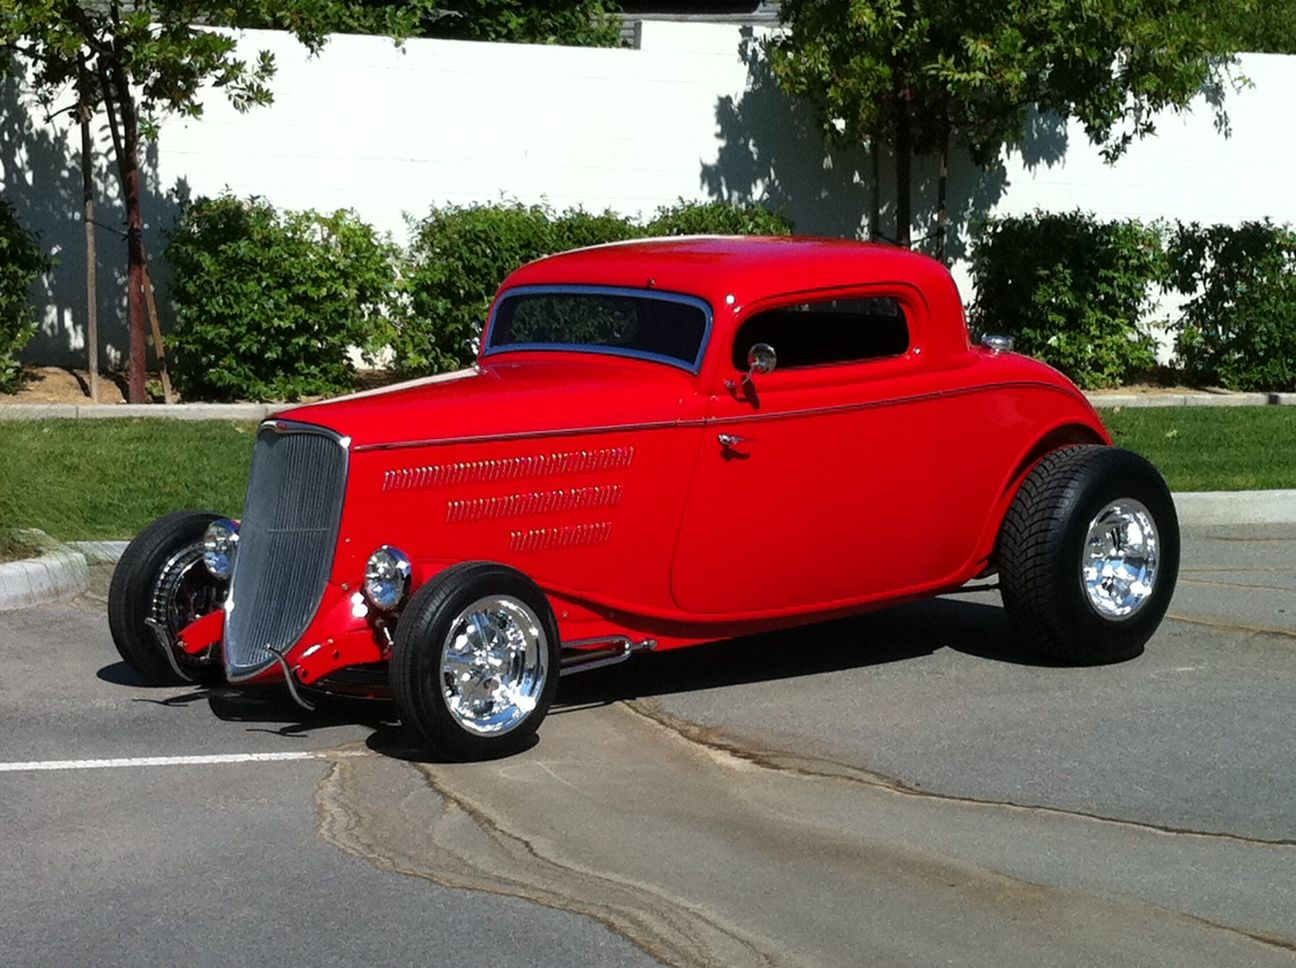 33 Ford Wheels : Ford coupe now this is hot anyone see zz top